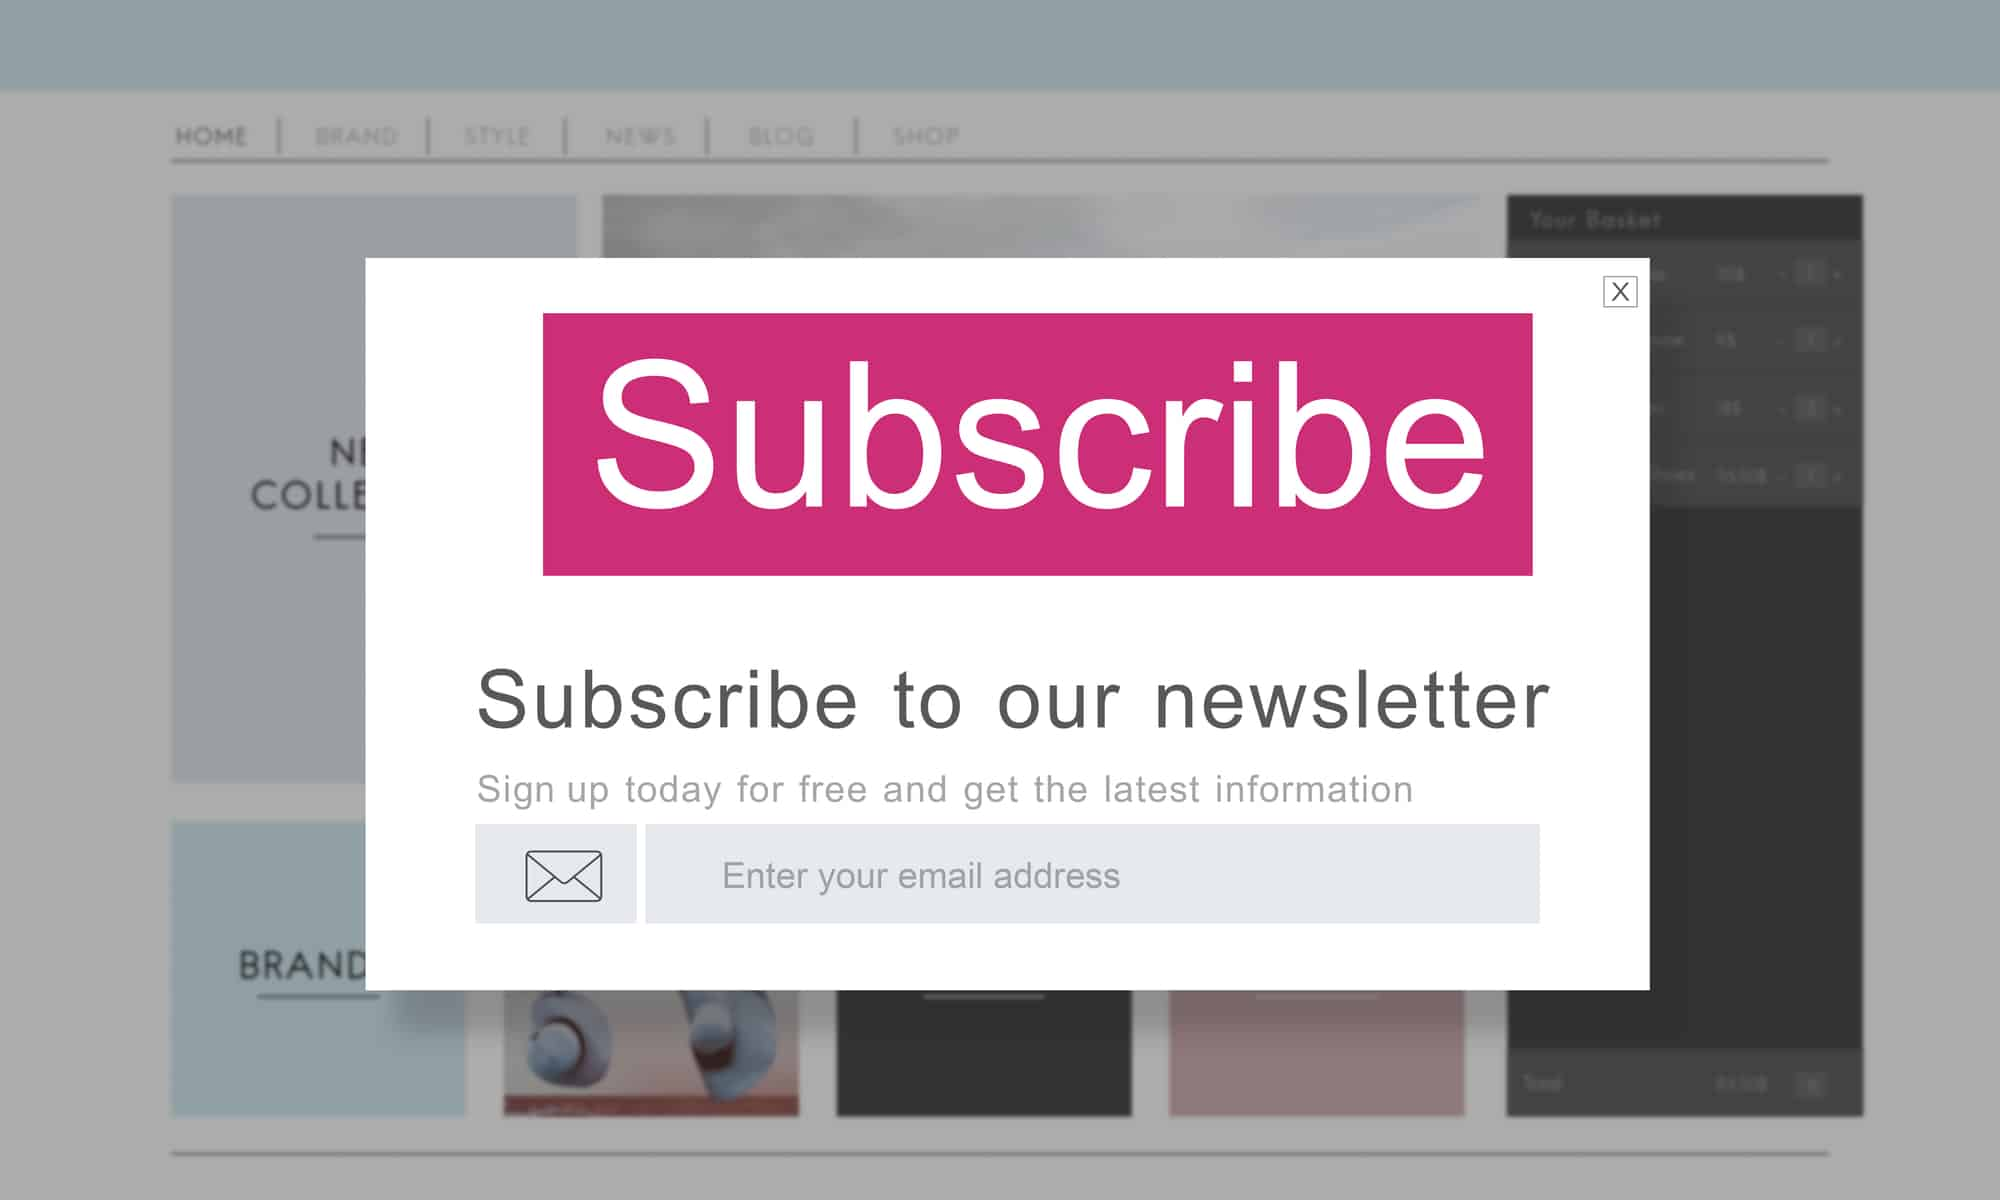 Grow your blog's audience by getting subscribers to your newsletter